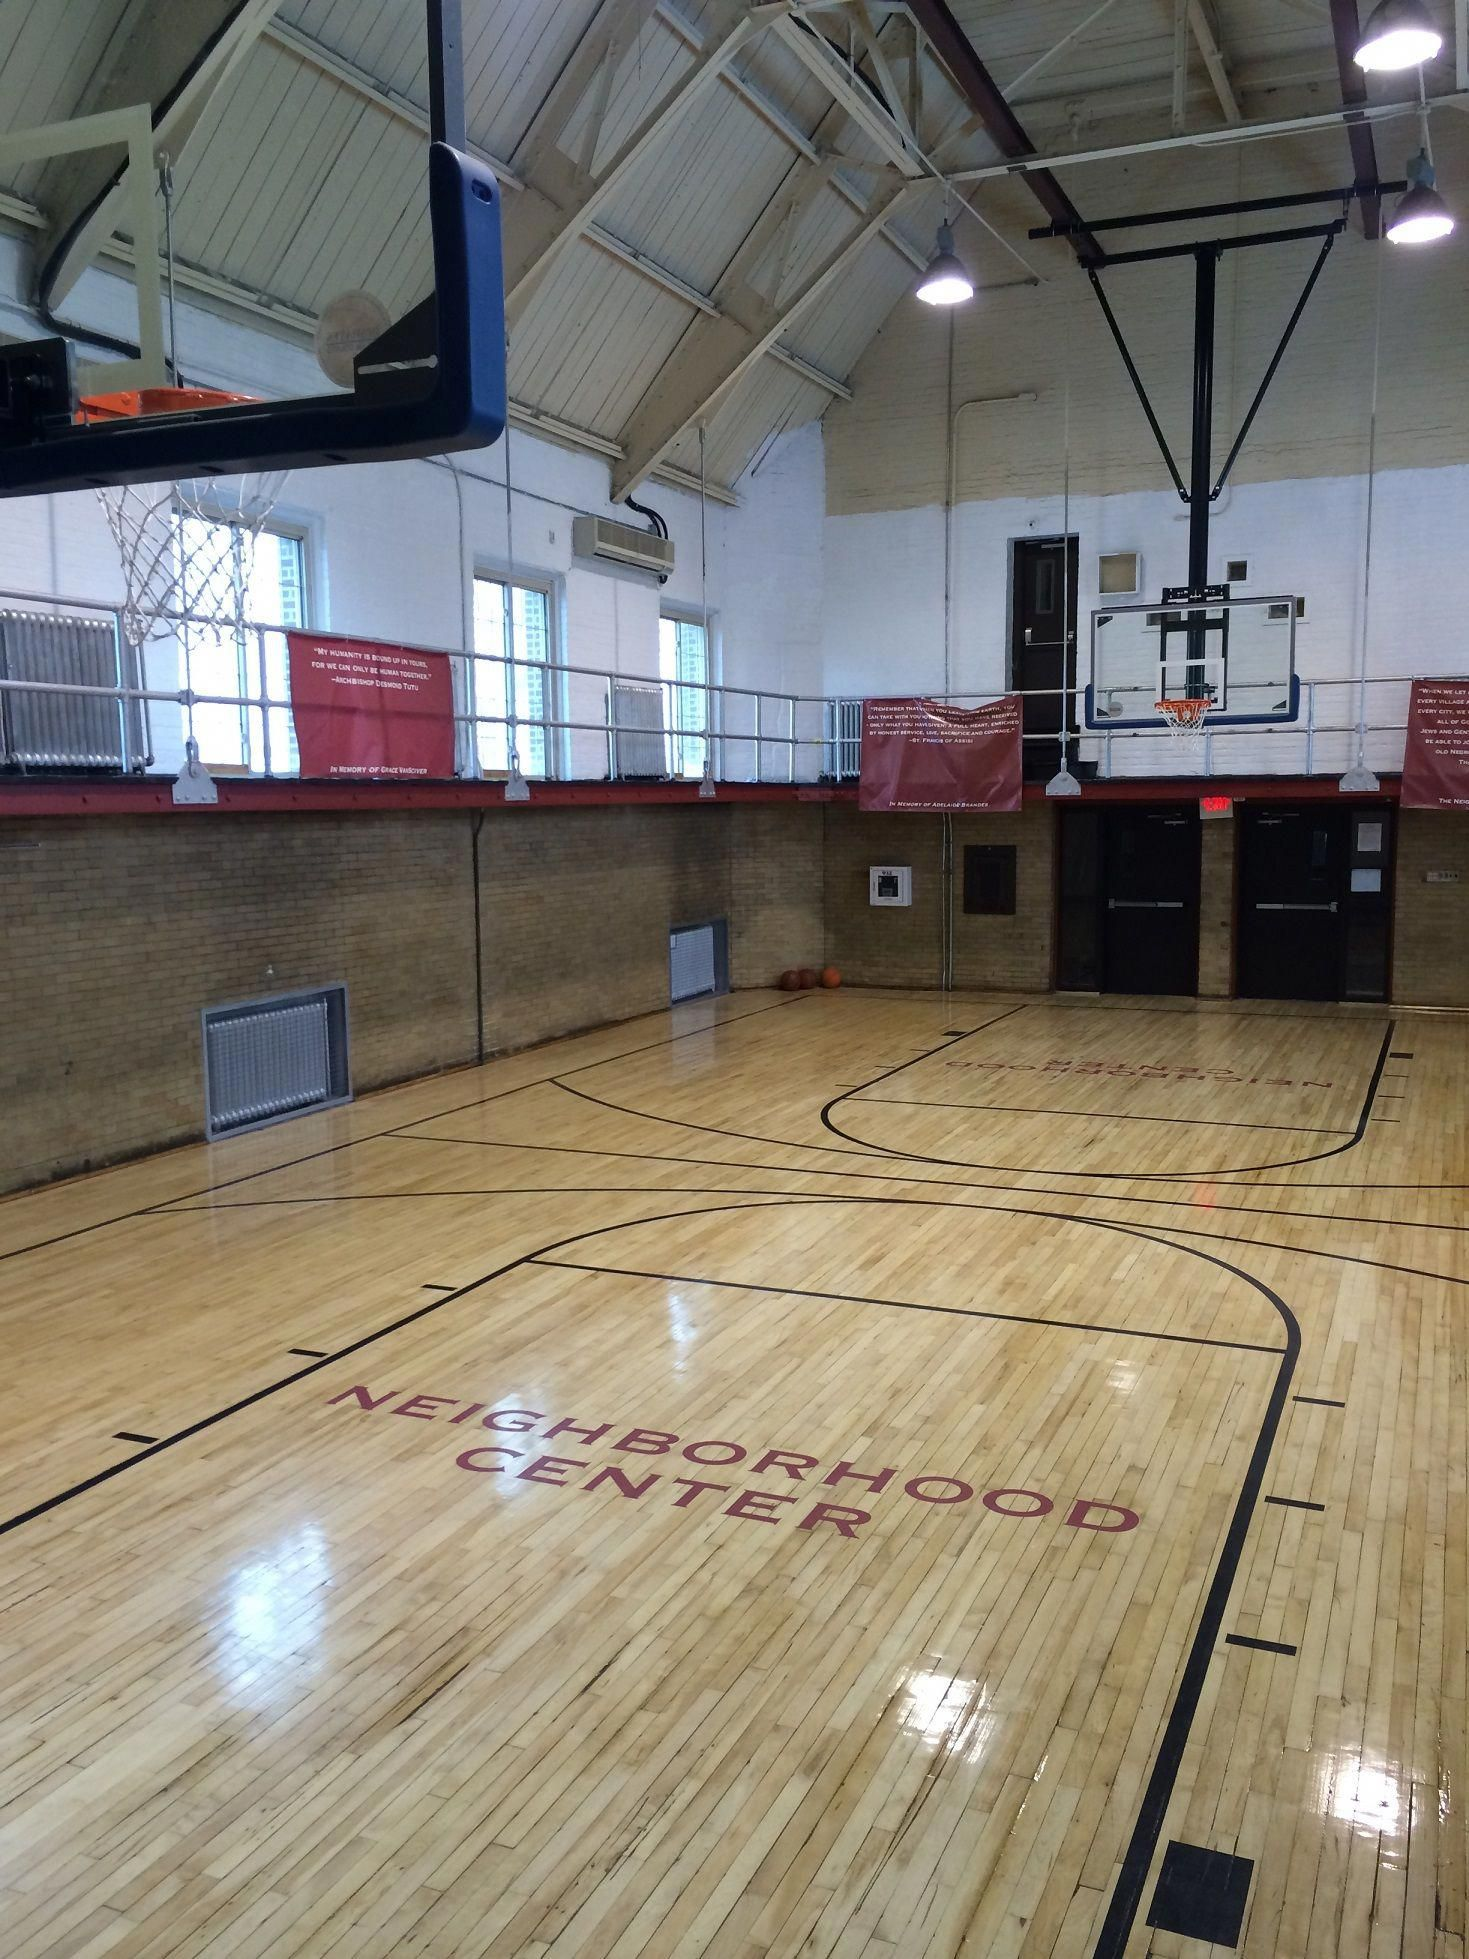 Indoor Basketball Court In A Small Gym In Camden Nj Indoorbasketballcourt Indoor Basketball Court Basketball Court Indoor Basketball